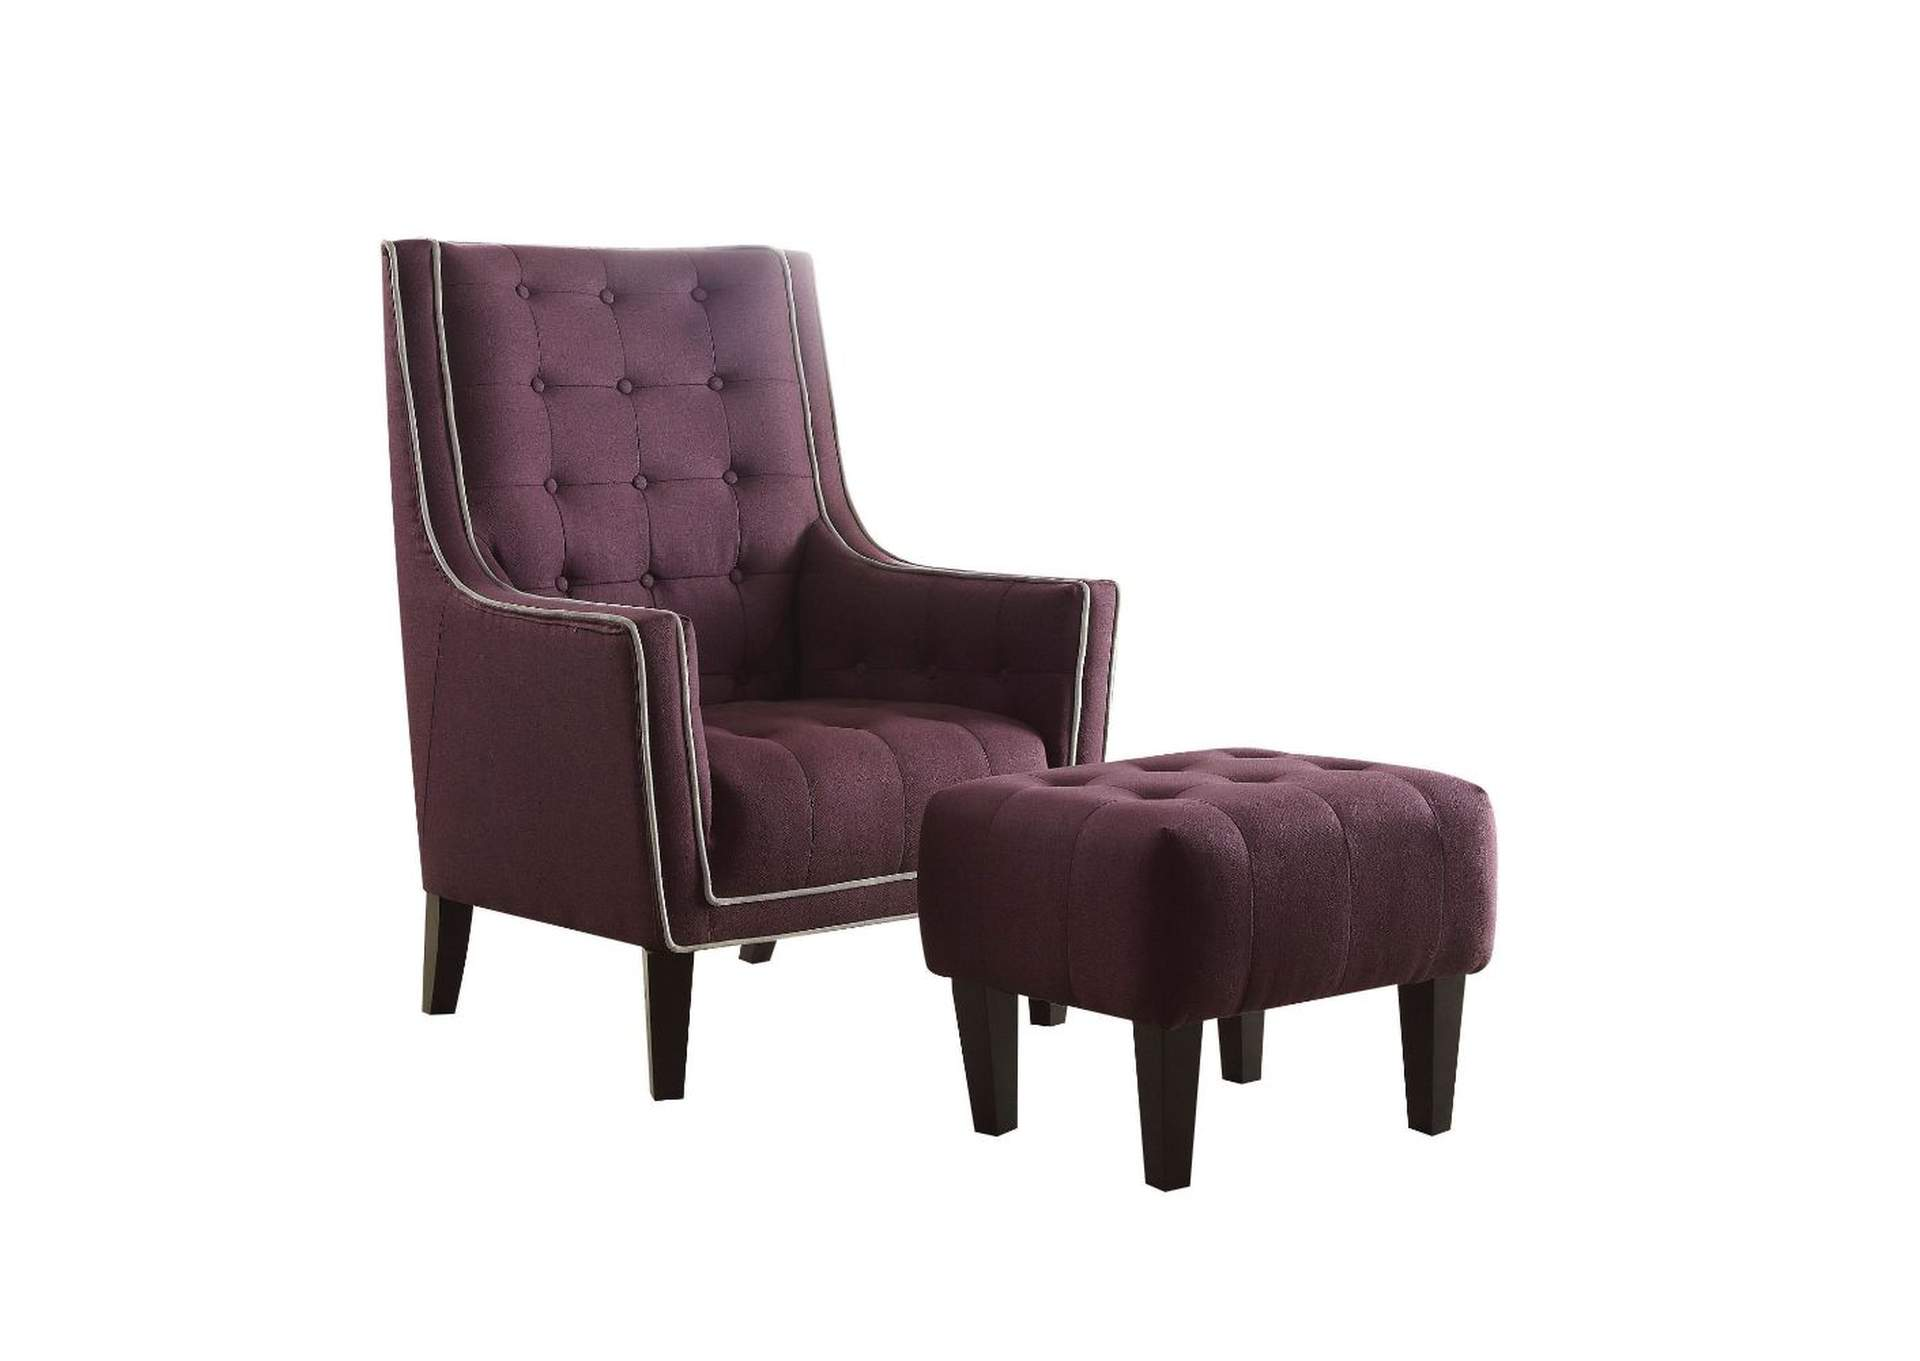 Marvelous Furniture Mattress Outlet Ophelia Purple Chair And Ottoman Beatyapartments Chair Design Images Beatyapartmentscom